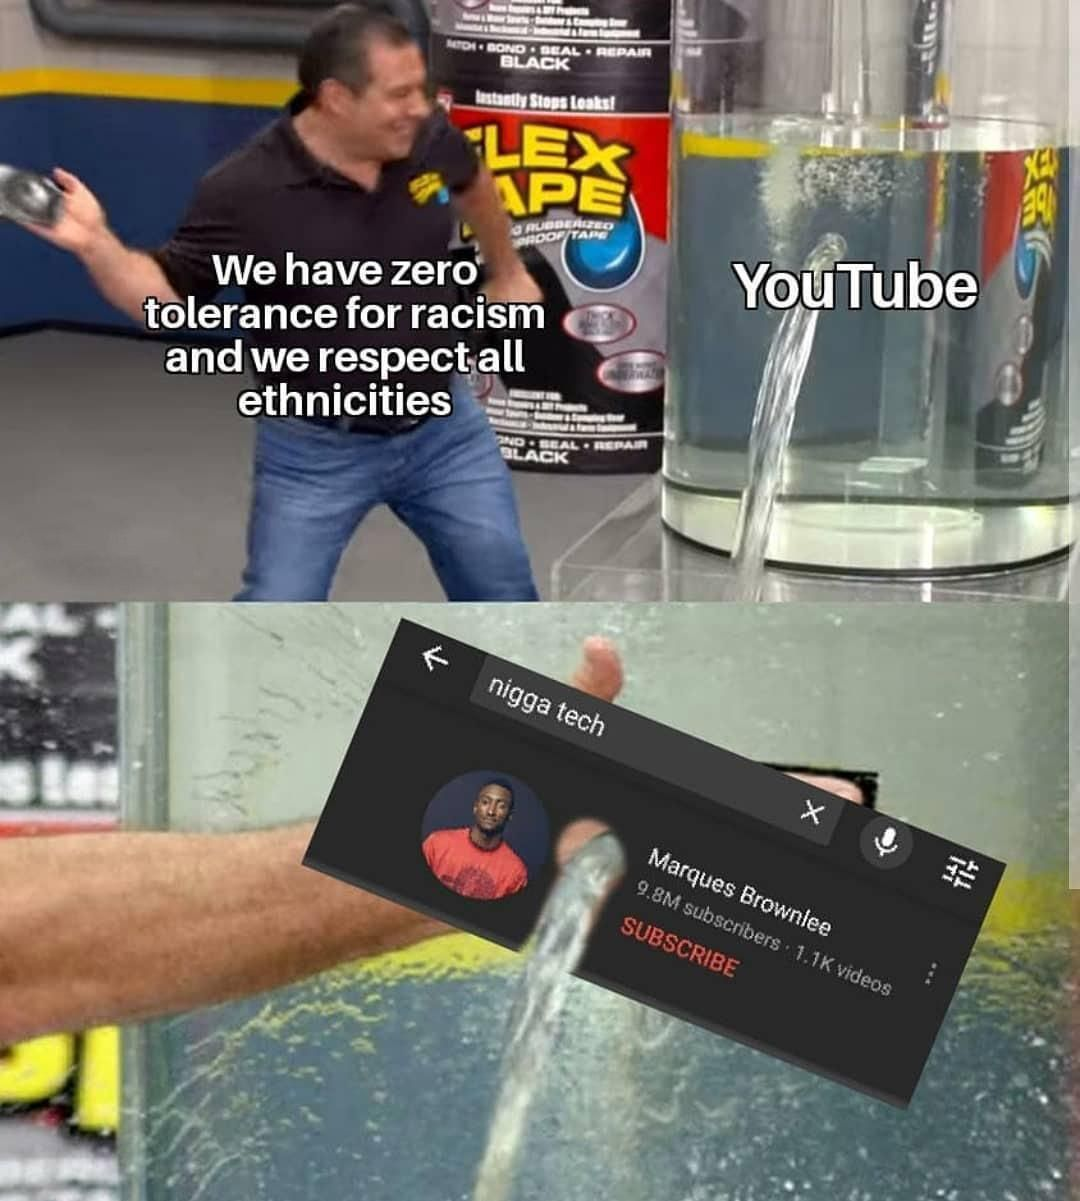 Youtube bad